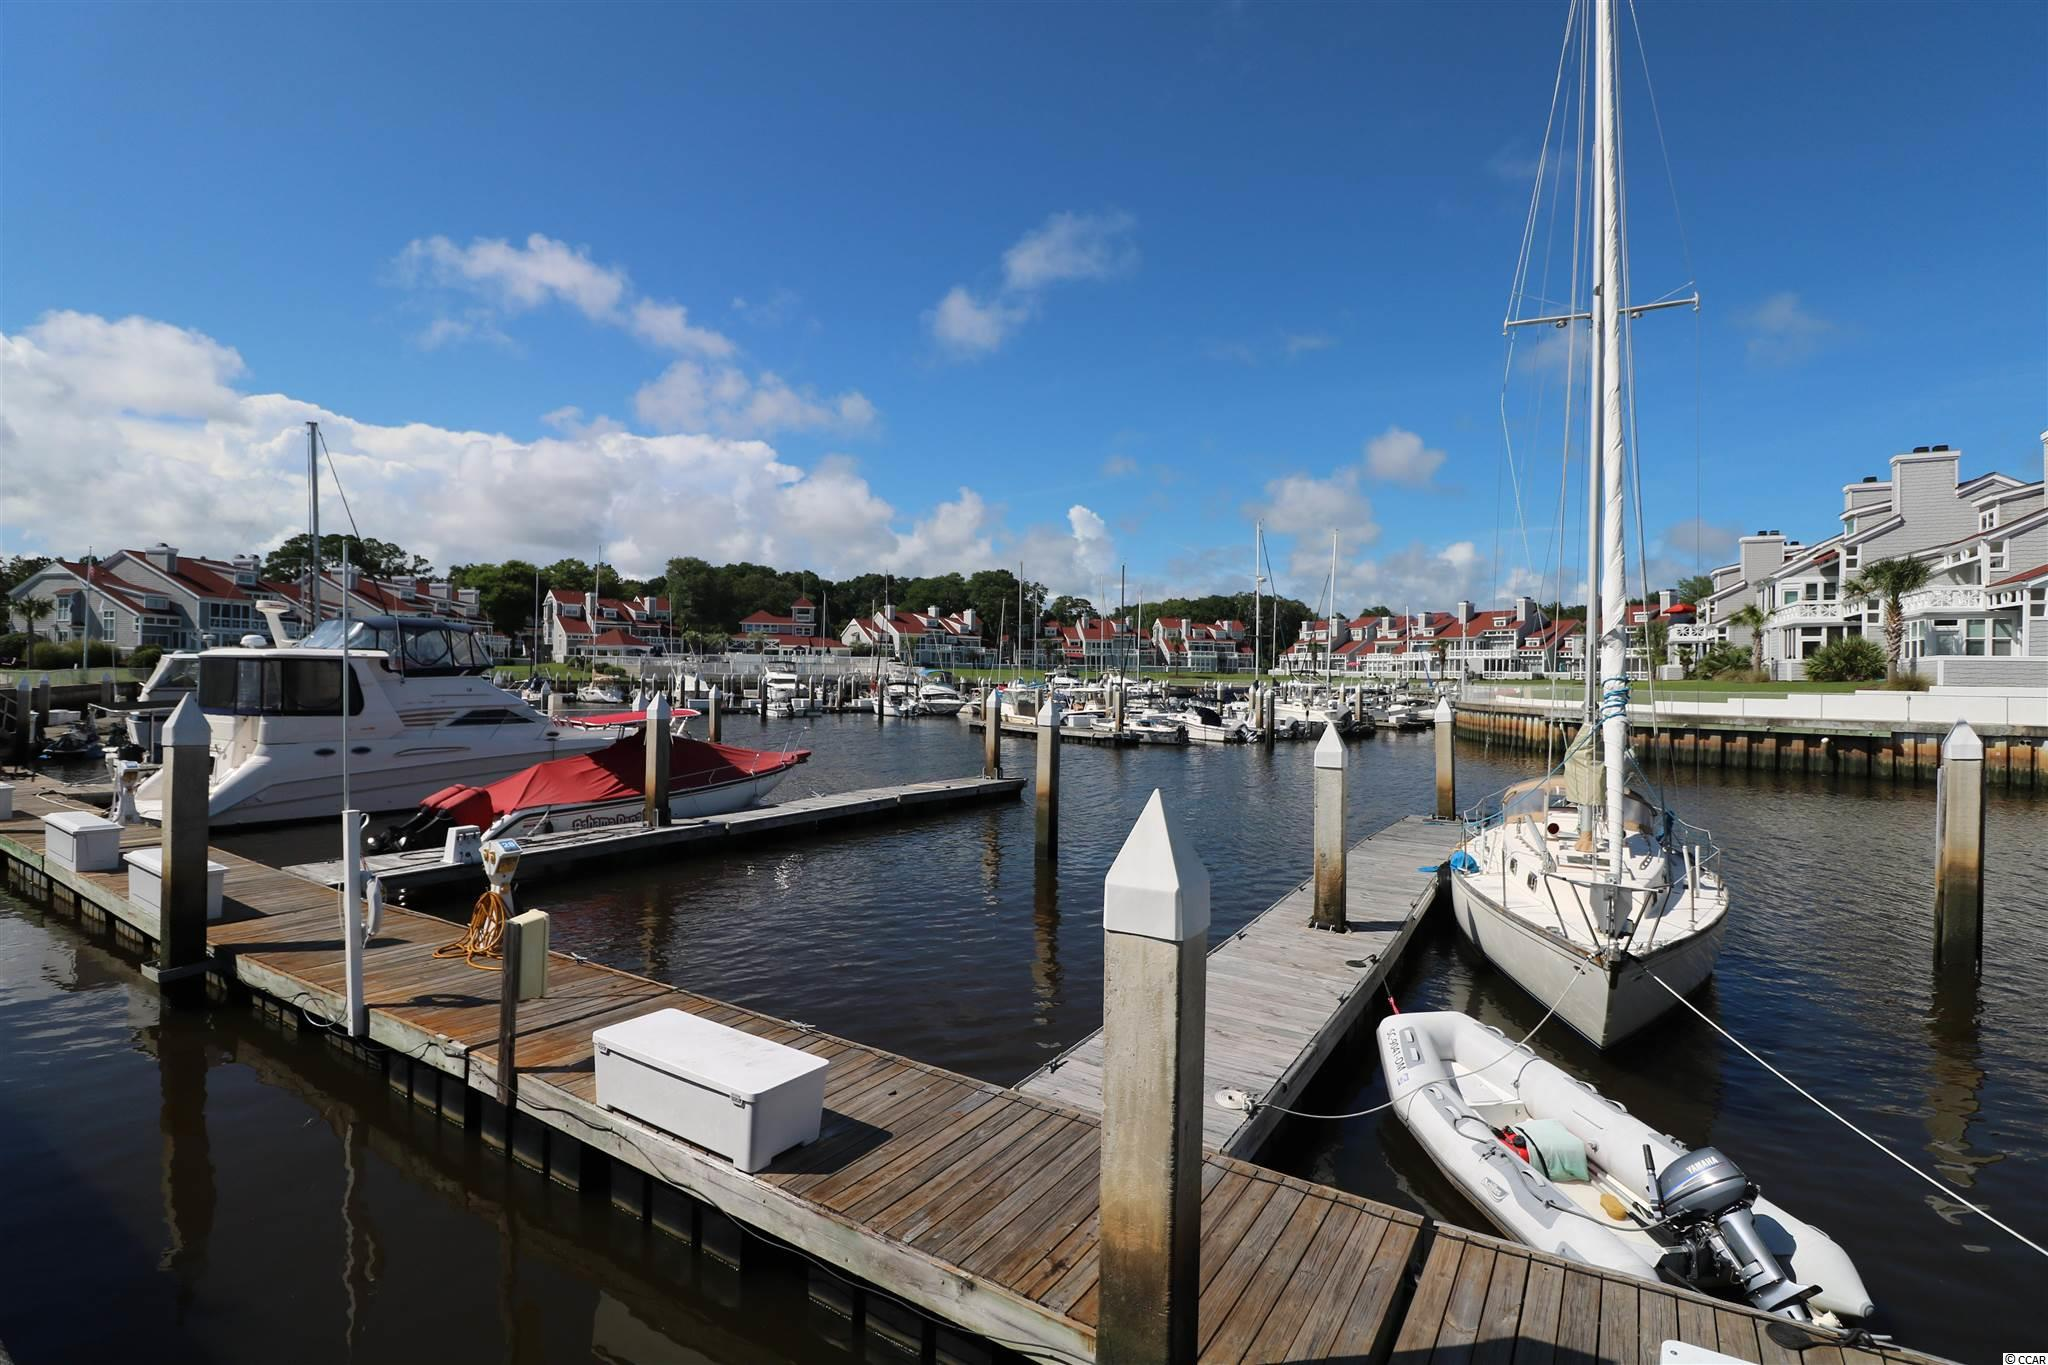 Rare Opportunity for a deeded 55' boat slip. Mariners Pointe is a gated community Intracoastal Waterway community with additional gated access to the boat slips and surveillance cameras for additional security. Slips include water, electric, and access to the community amenities. As an owner you would have access to the pool, hot tub, showers, clubhouse, bar, tennis and basketball courts. Enjoy the  shopping and restaurants of Little River along with the Famous annual Blue Crab Festival and still be just a short drive to North Myrtle Beach.